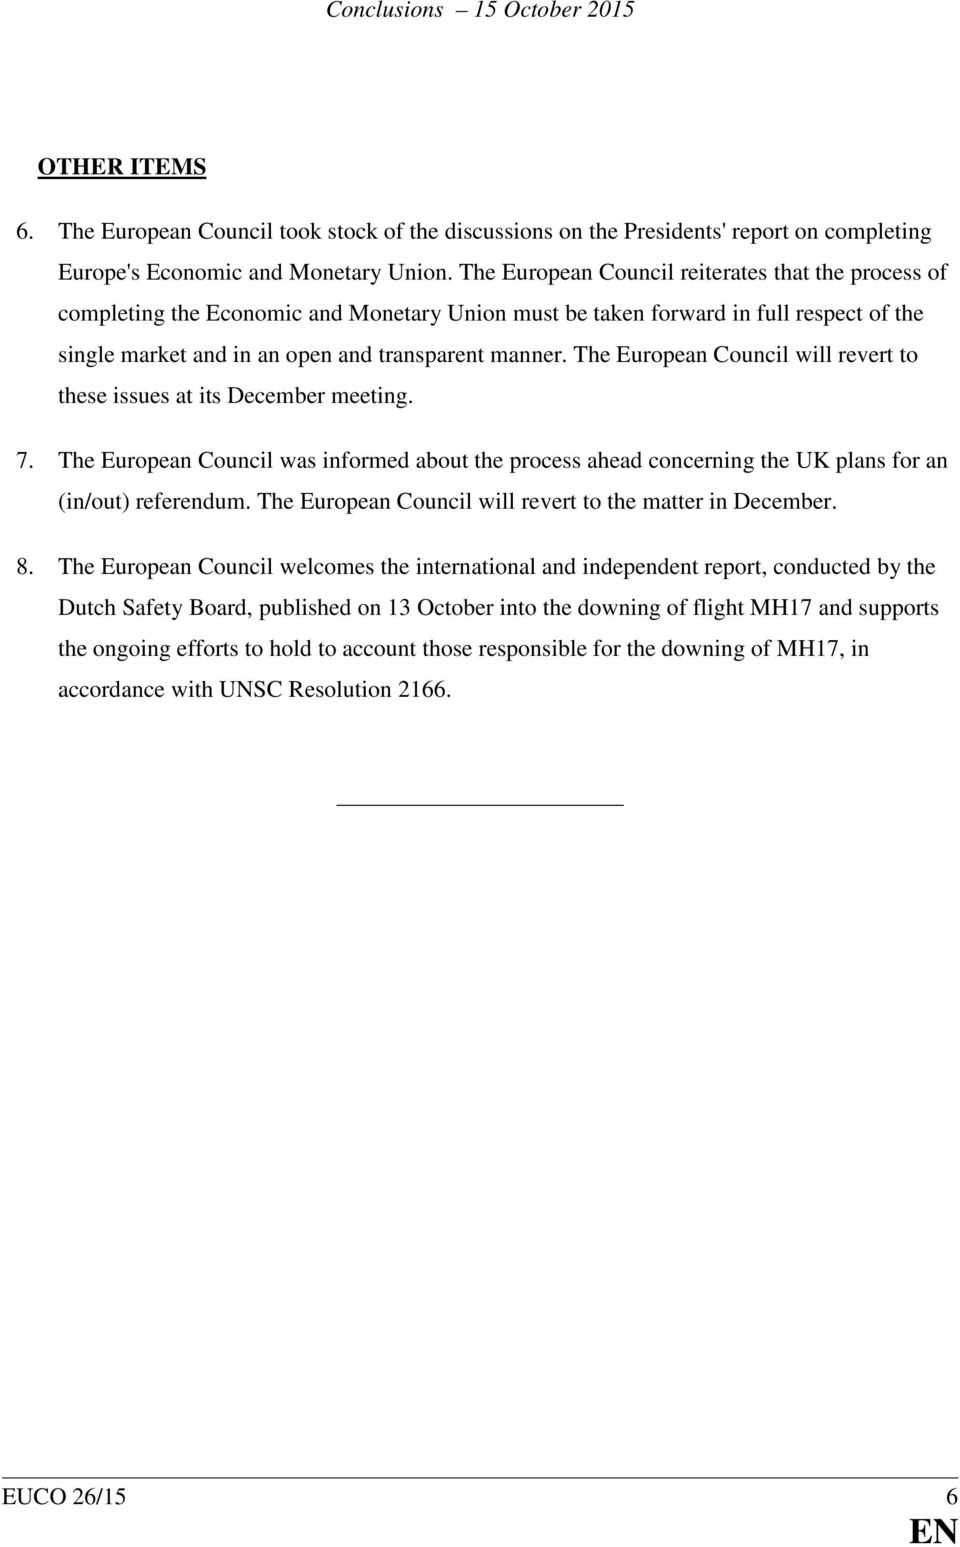 The European Council will revert to these issues at its December meeting. 7. The European Council was informed about the process ahead concerning the UK plans for an (in/out) referendum.